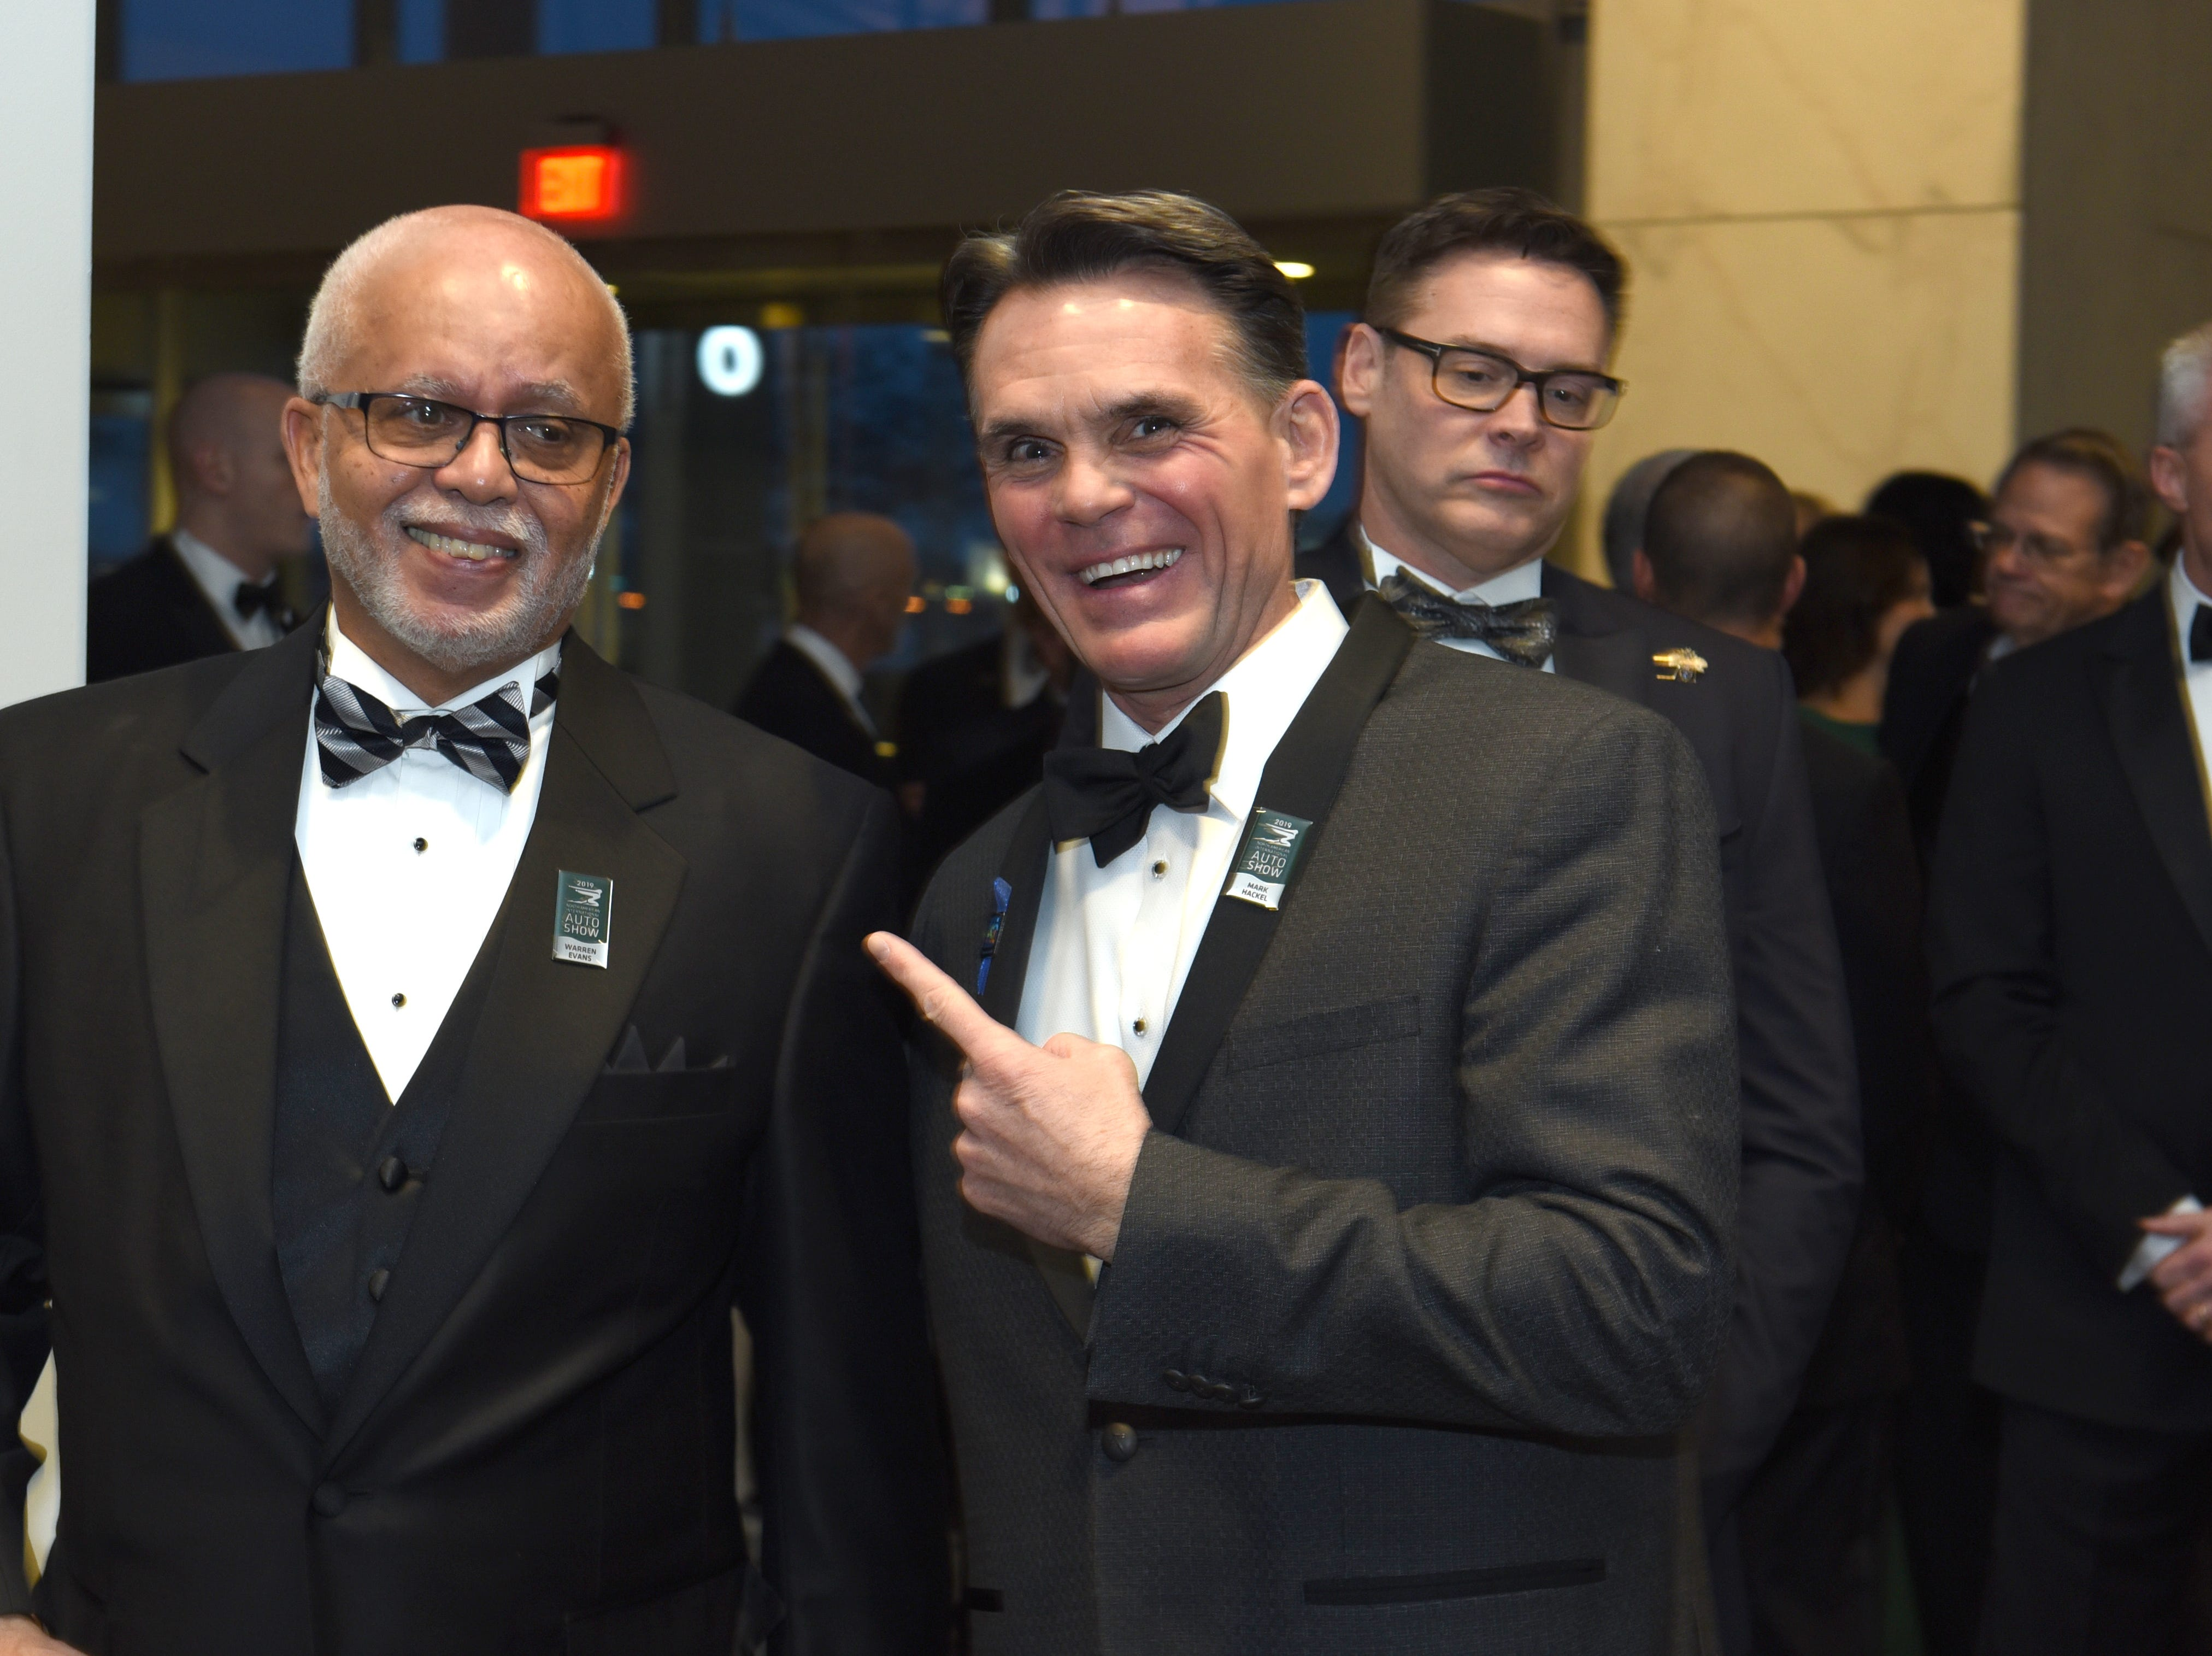 Wayne County Executive Warren Evans, left, and Macomb County Executive  Mark Hackel share a moment at the 2019 Charity Preview.